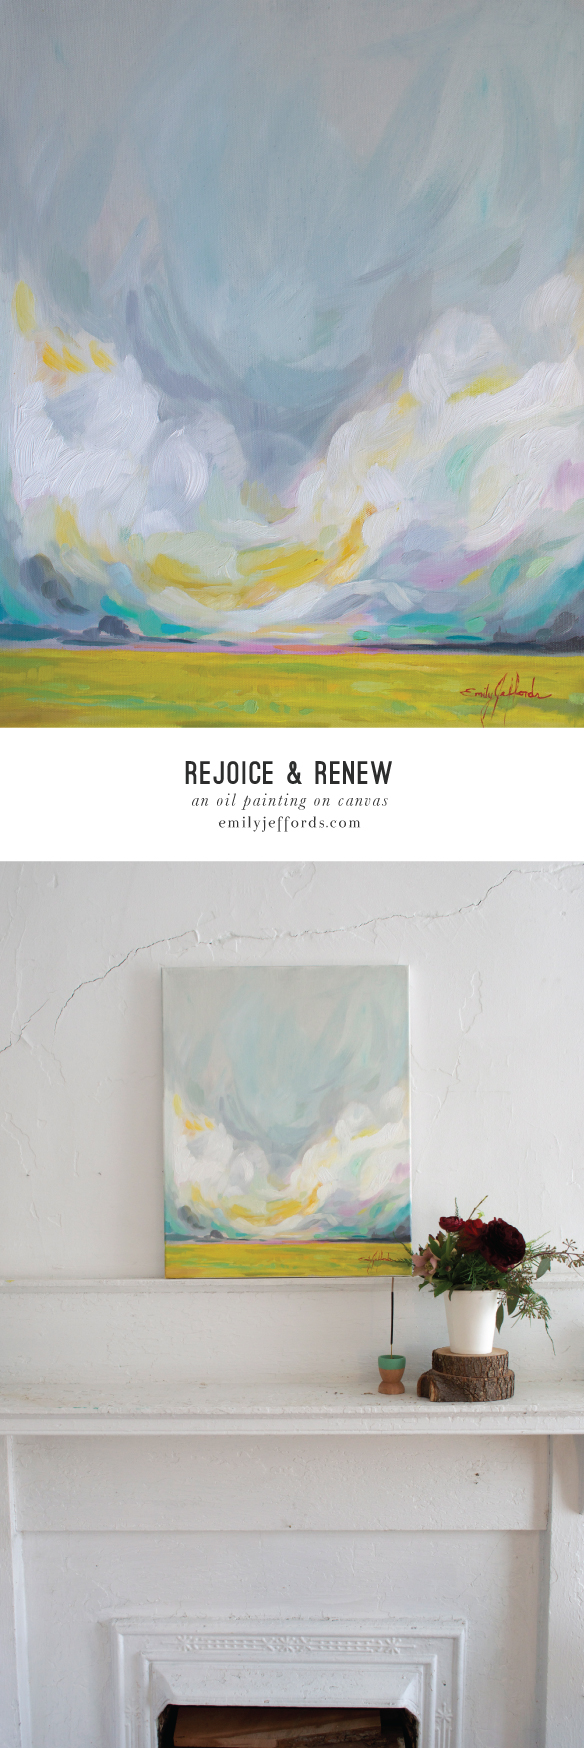 Rejoice & Renew: Original Oil Landscape Painting Emily Jeffords